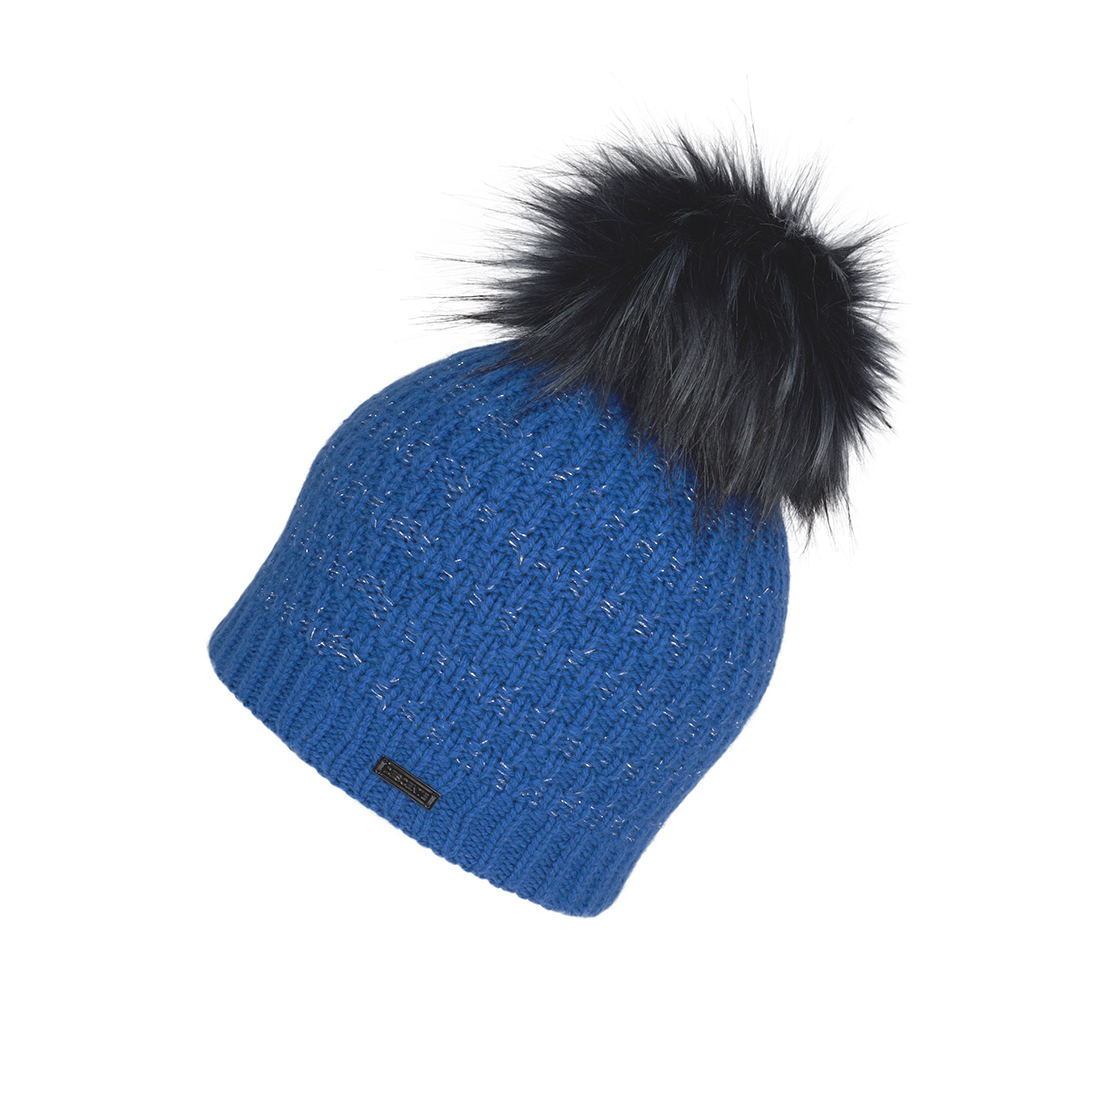 WOMEN'S KNIT CAP